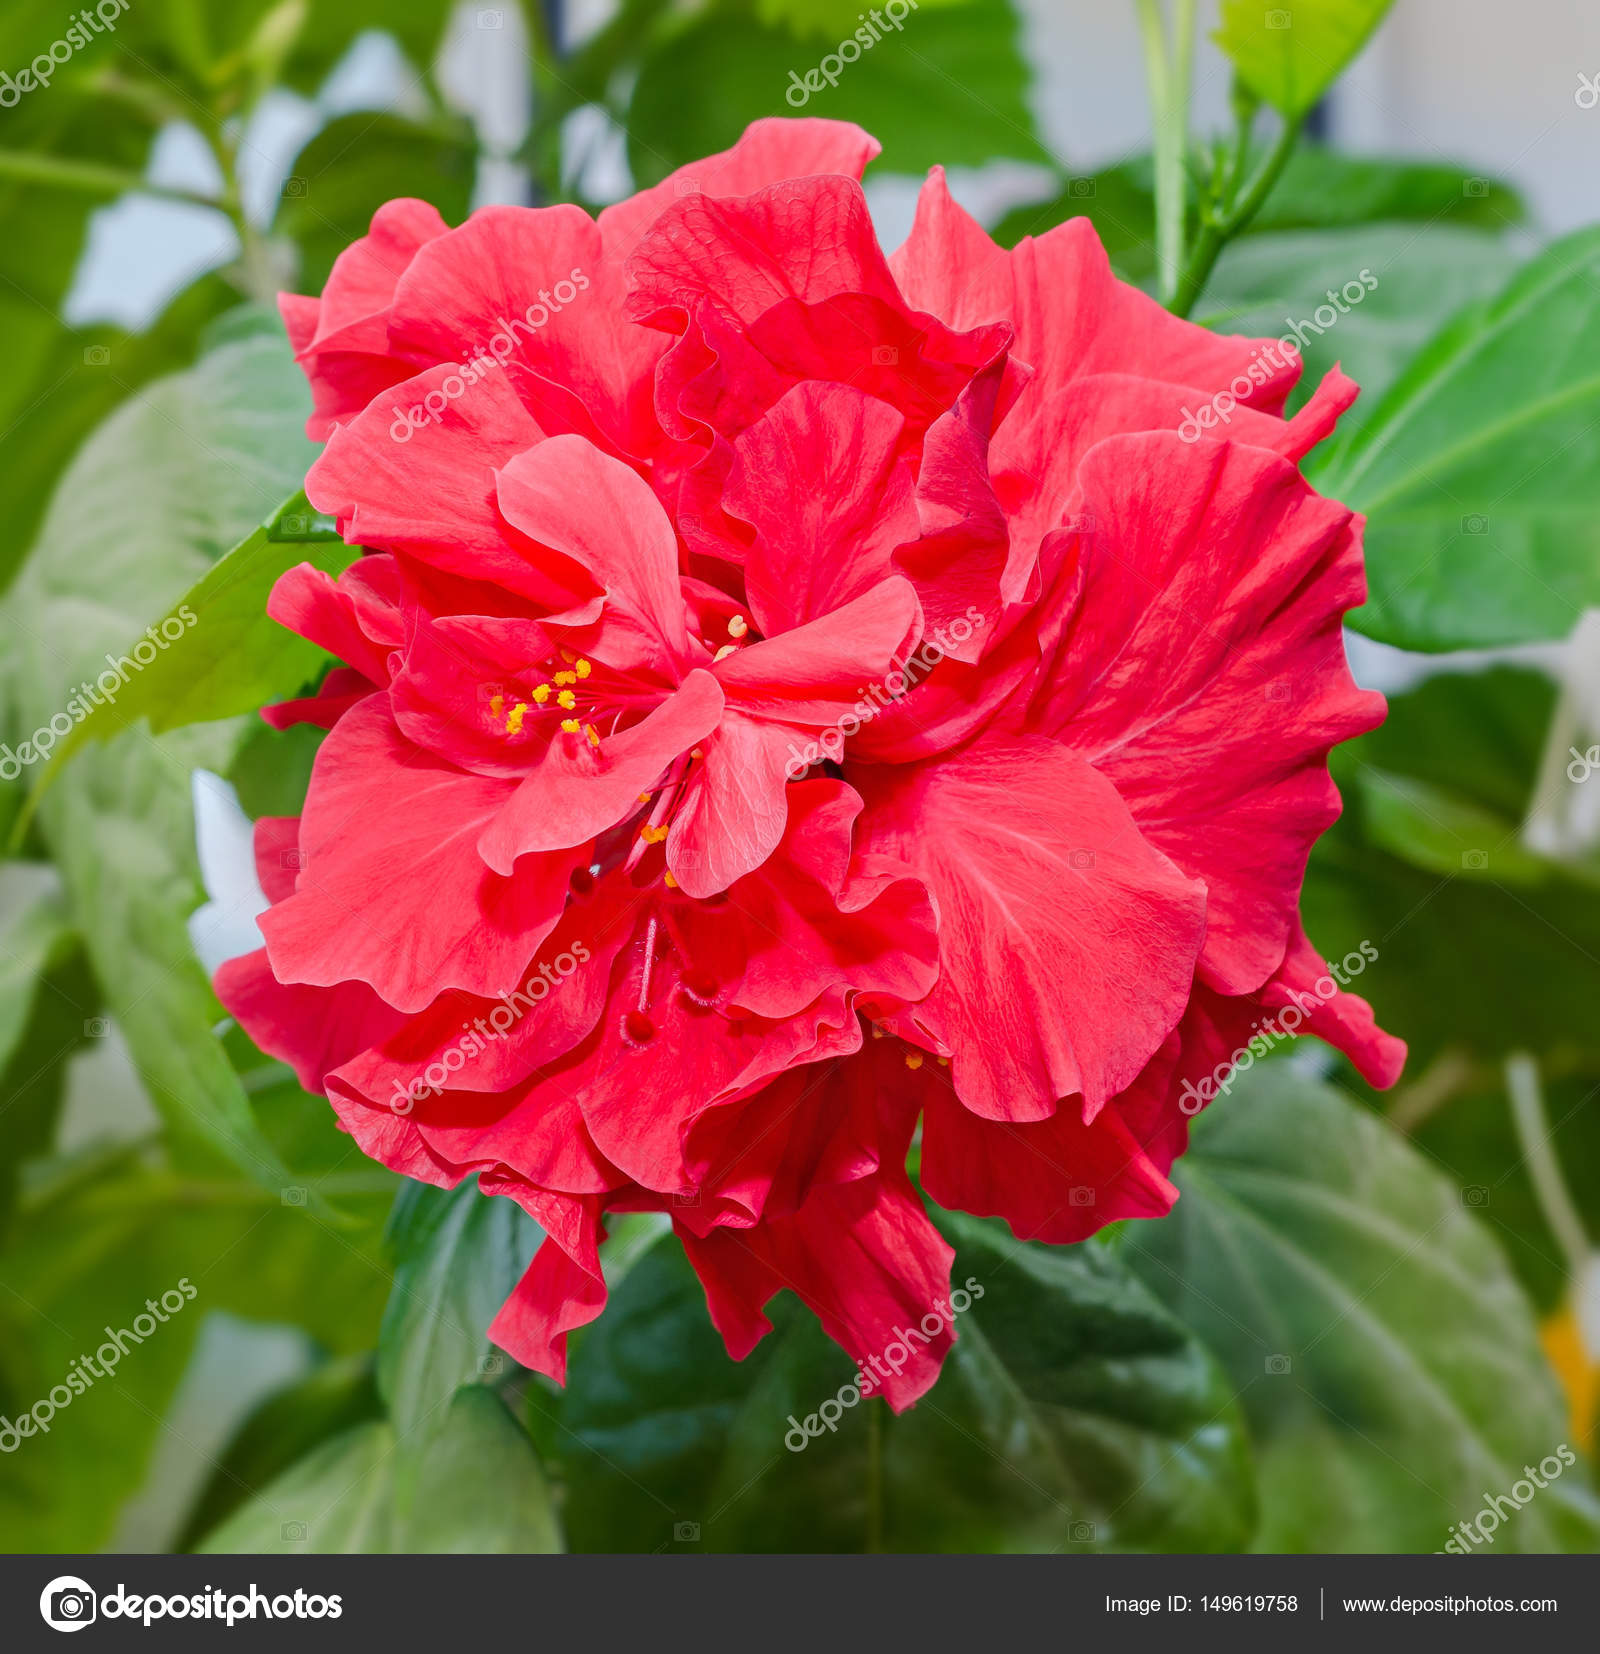 Hibiscus rosa sinensis red flower known as chinese hibiscus stock hibiscus rosa sinensis red flower known as chinese hibiscus china rose hawaiian hibiscus shoeblackplant photo by ncristian izmirmasajfo